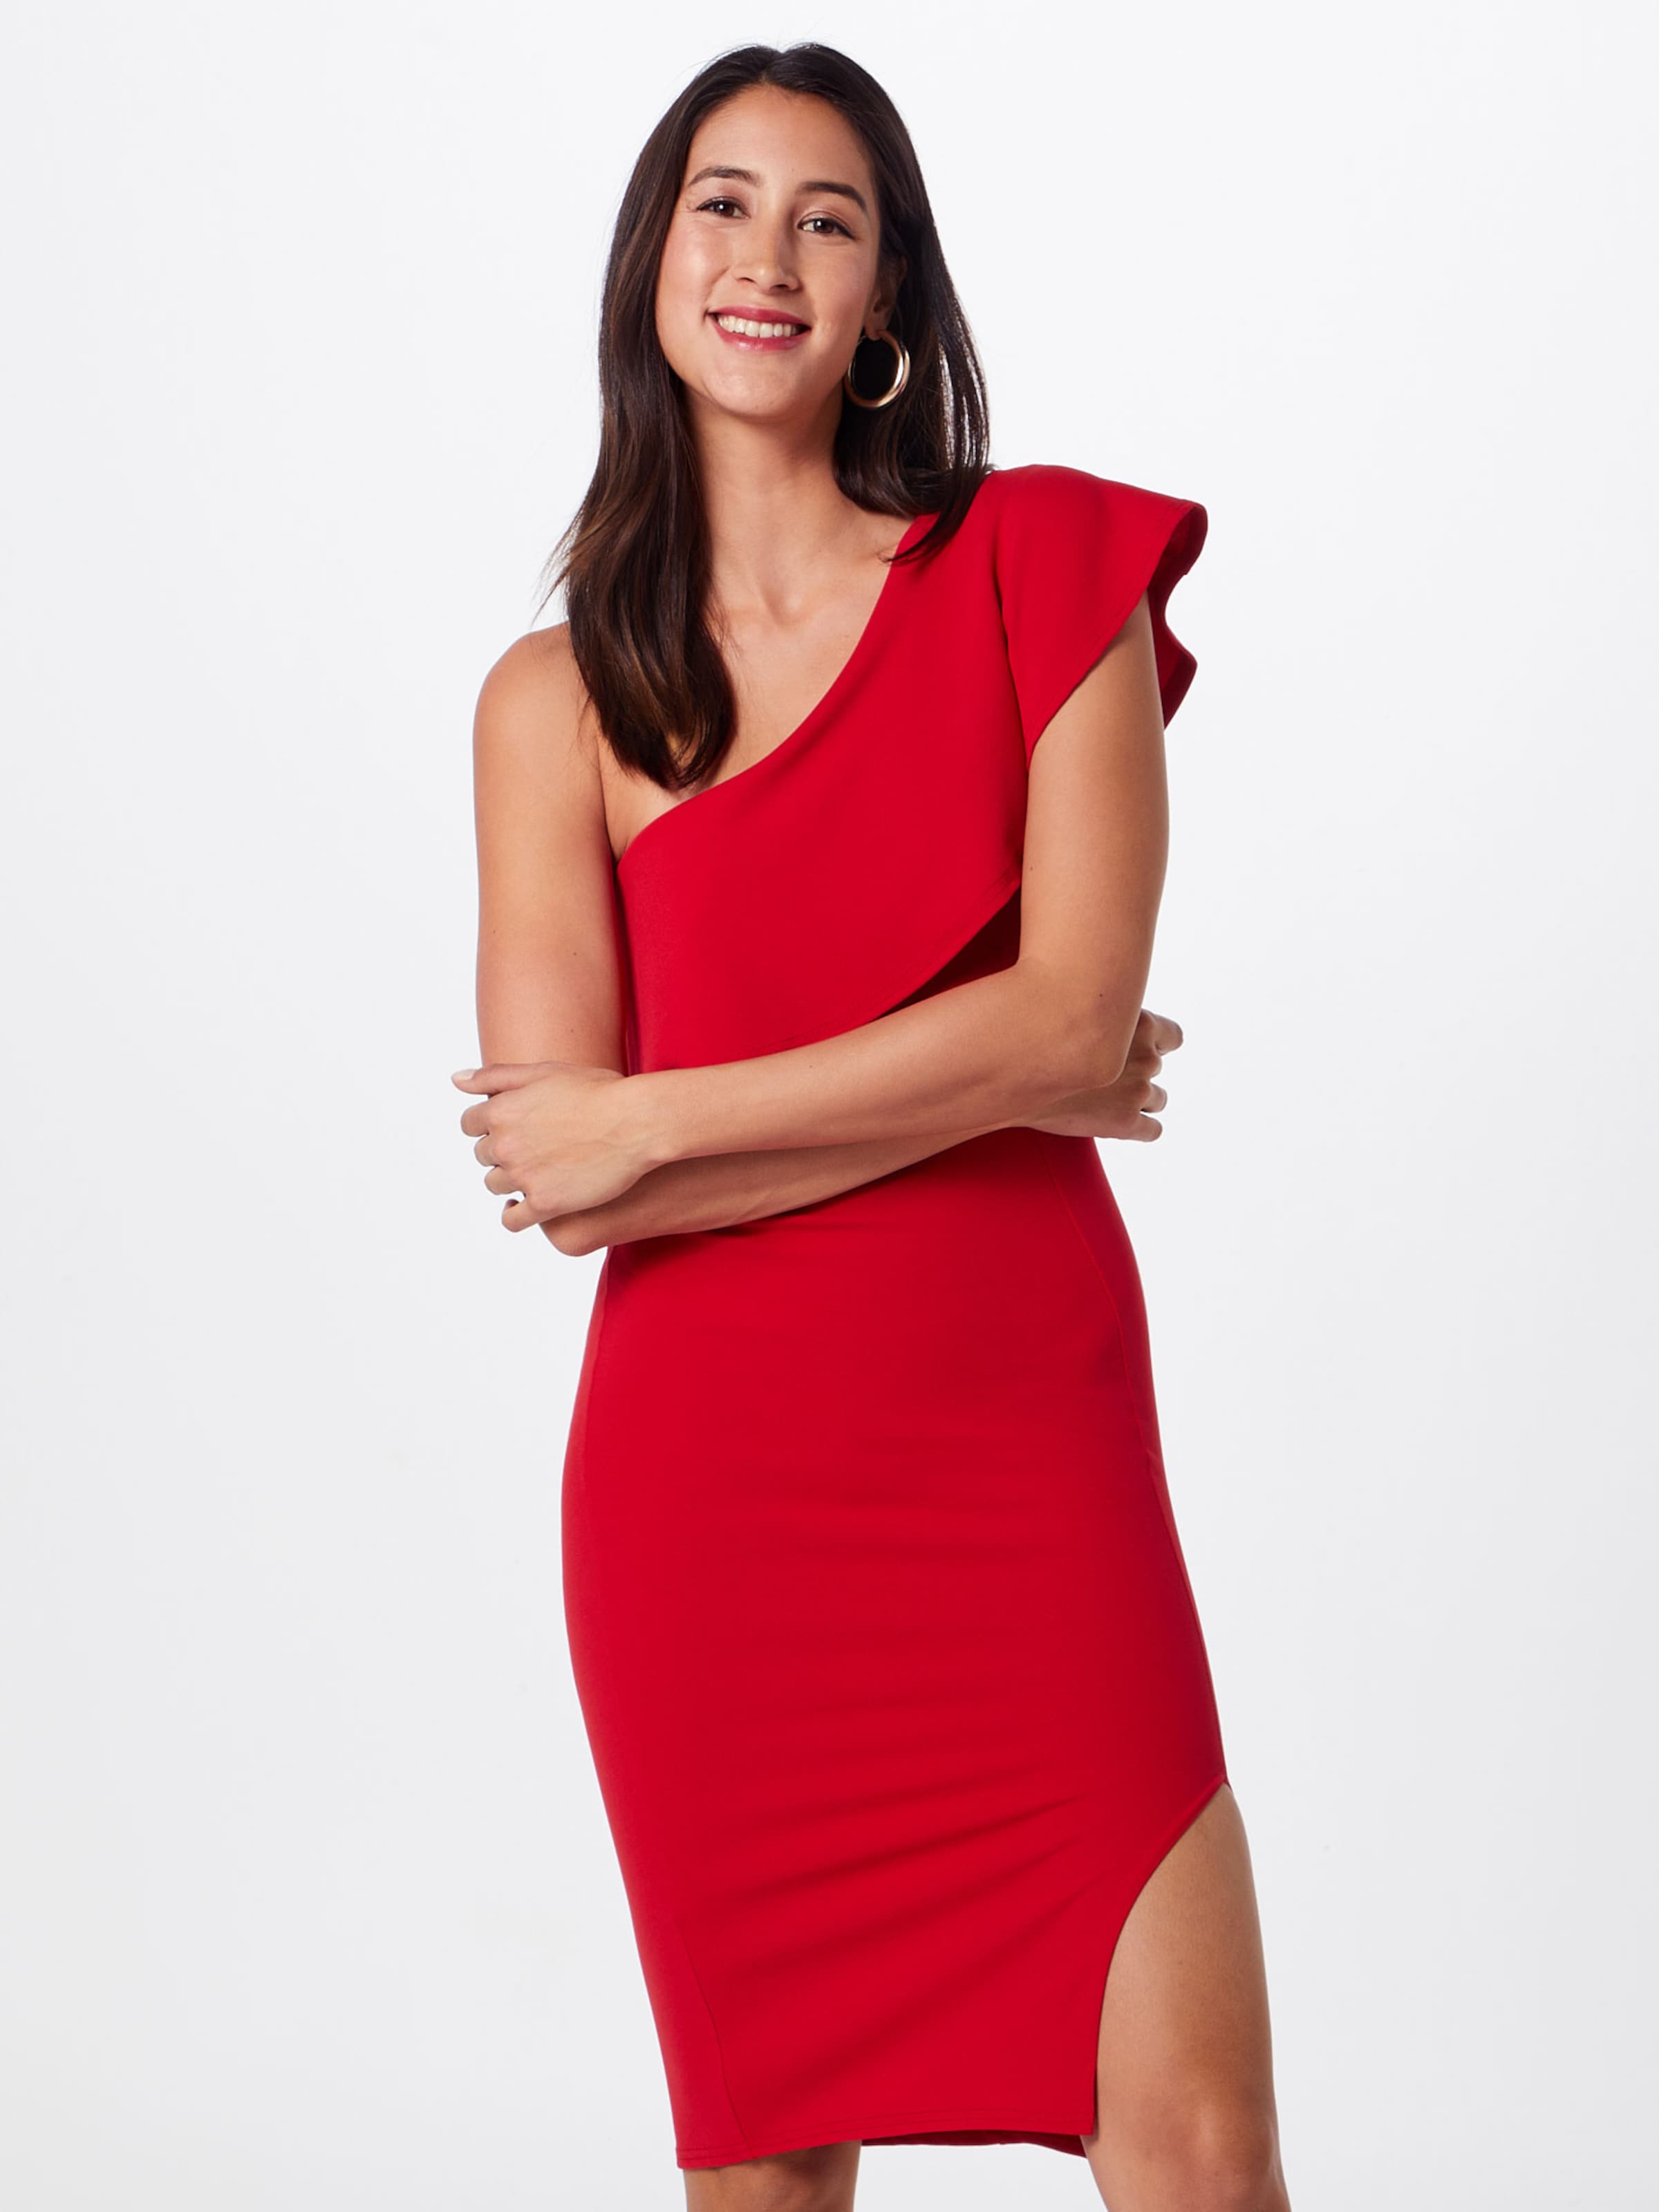 'scuba Kleid Frill Missguided One In Rot Midi Dress' Shoulder nOPkZN8wX0